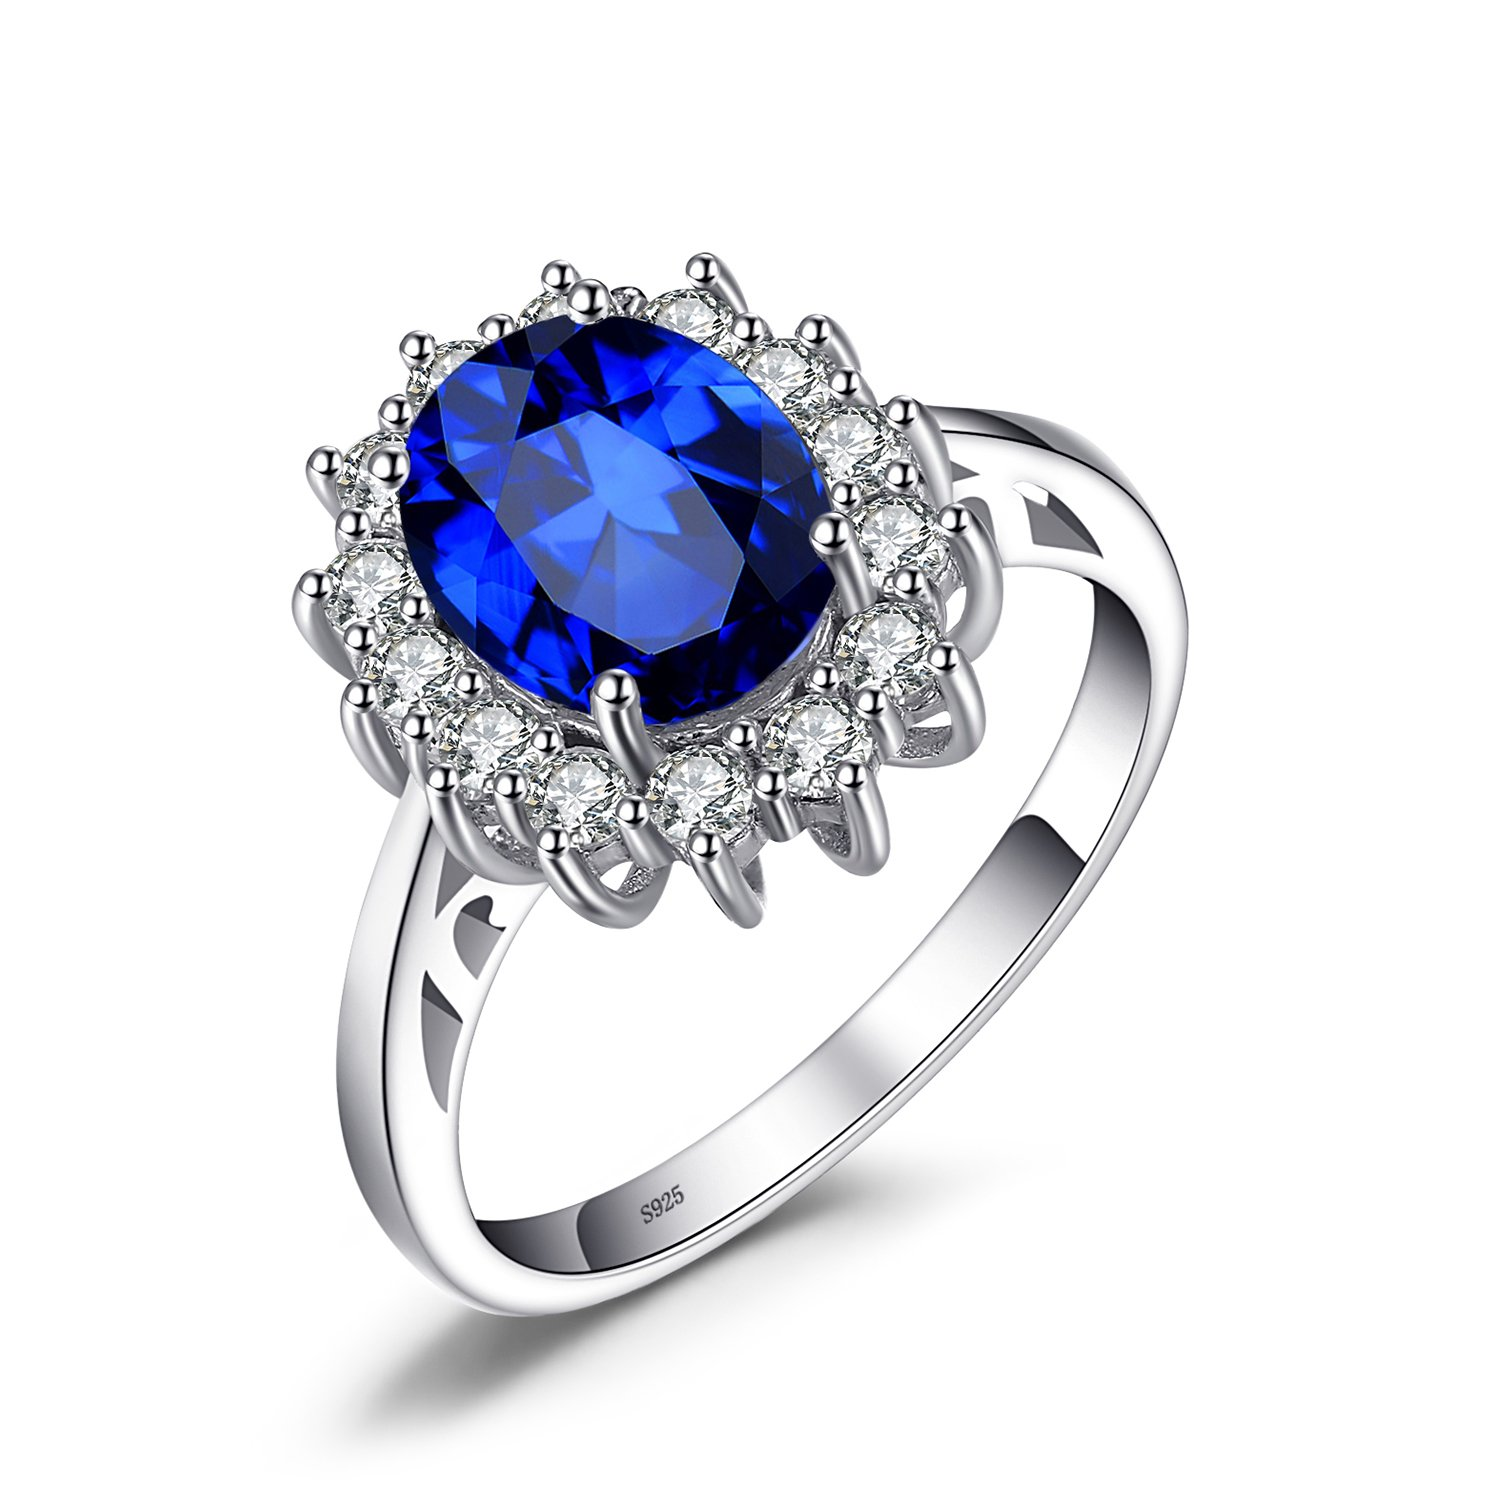 wallpaper diamond blue wedding for rings ring real trends engagement hd fancy light